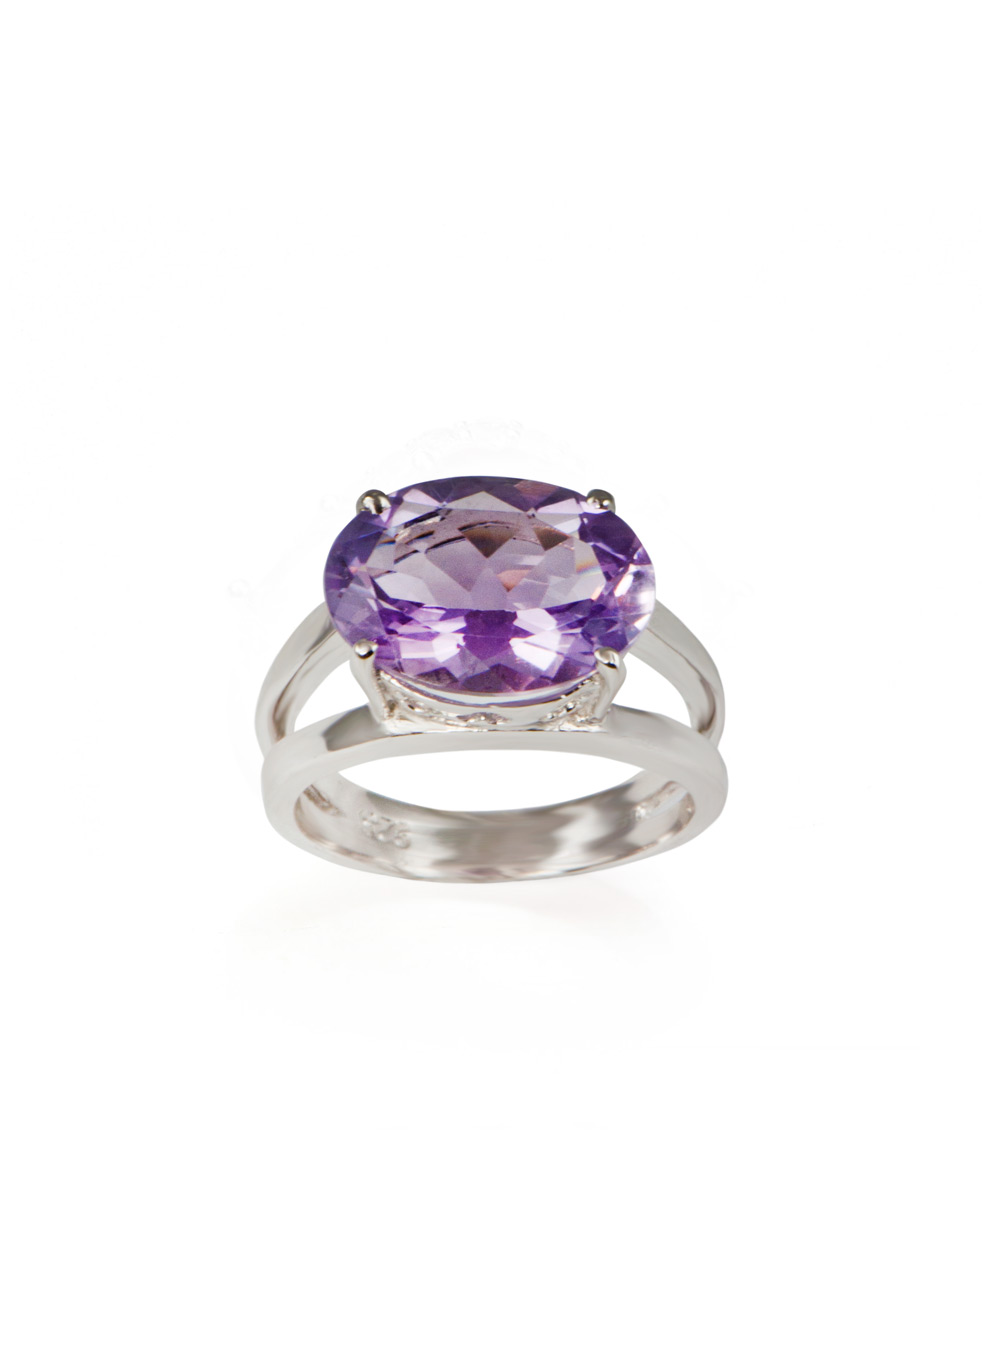 APPLES & FIGS AMETHYST MOON OVAL RING